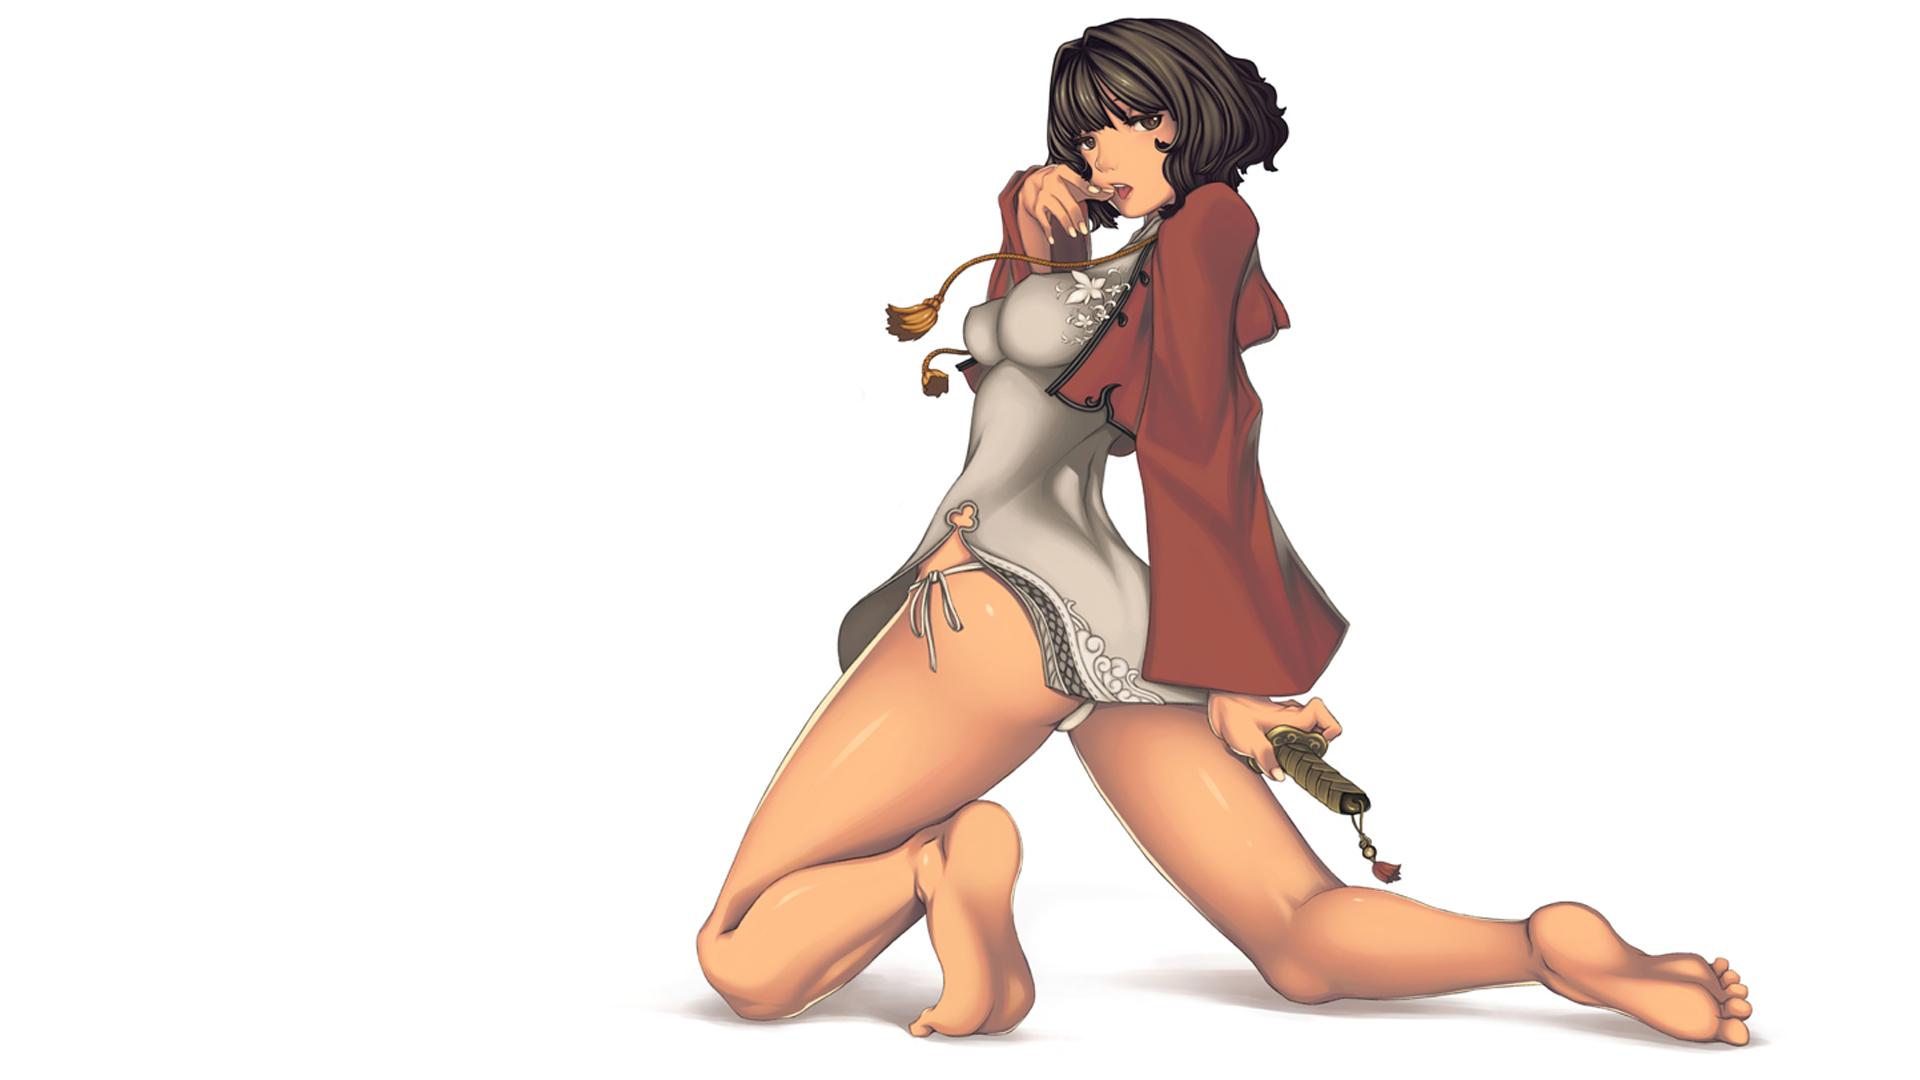 Blade and soul nude mod uncensored anime photo